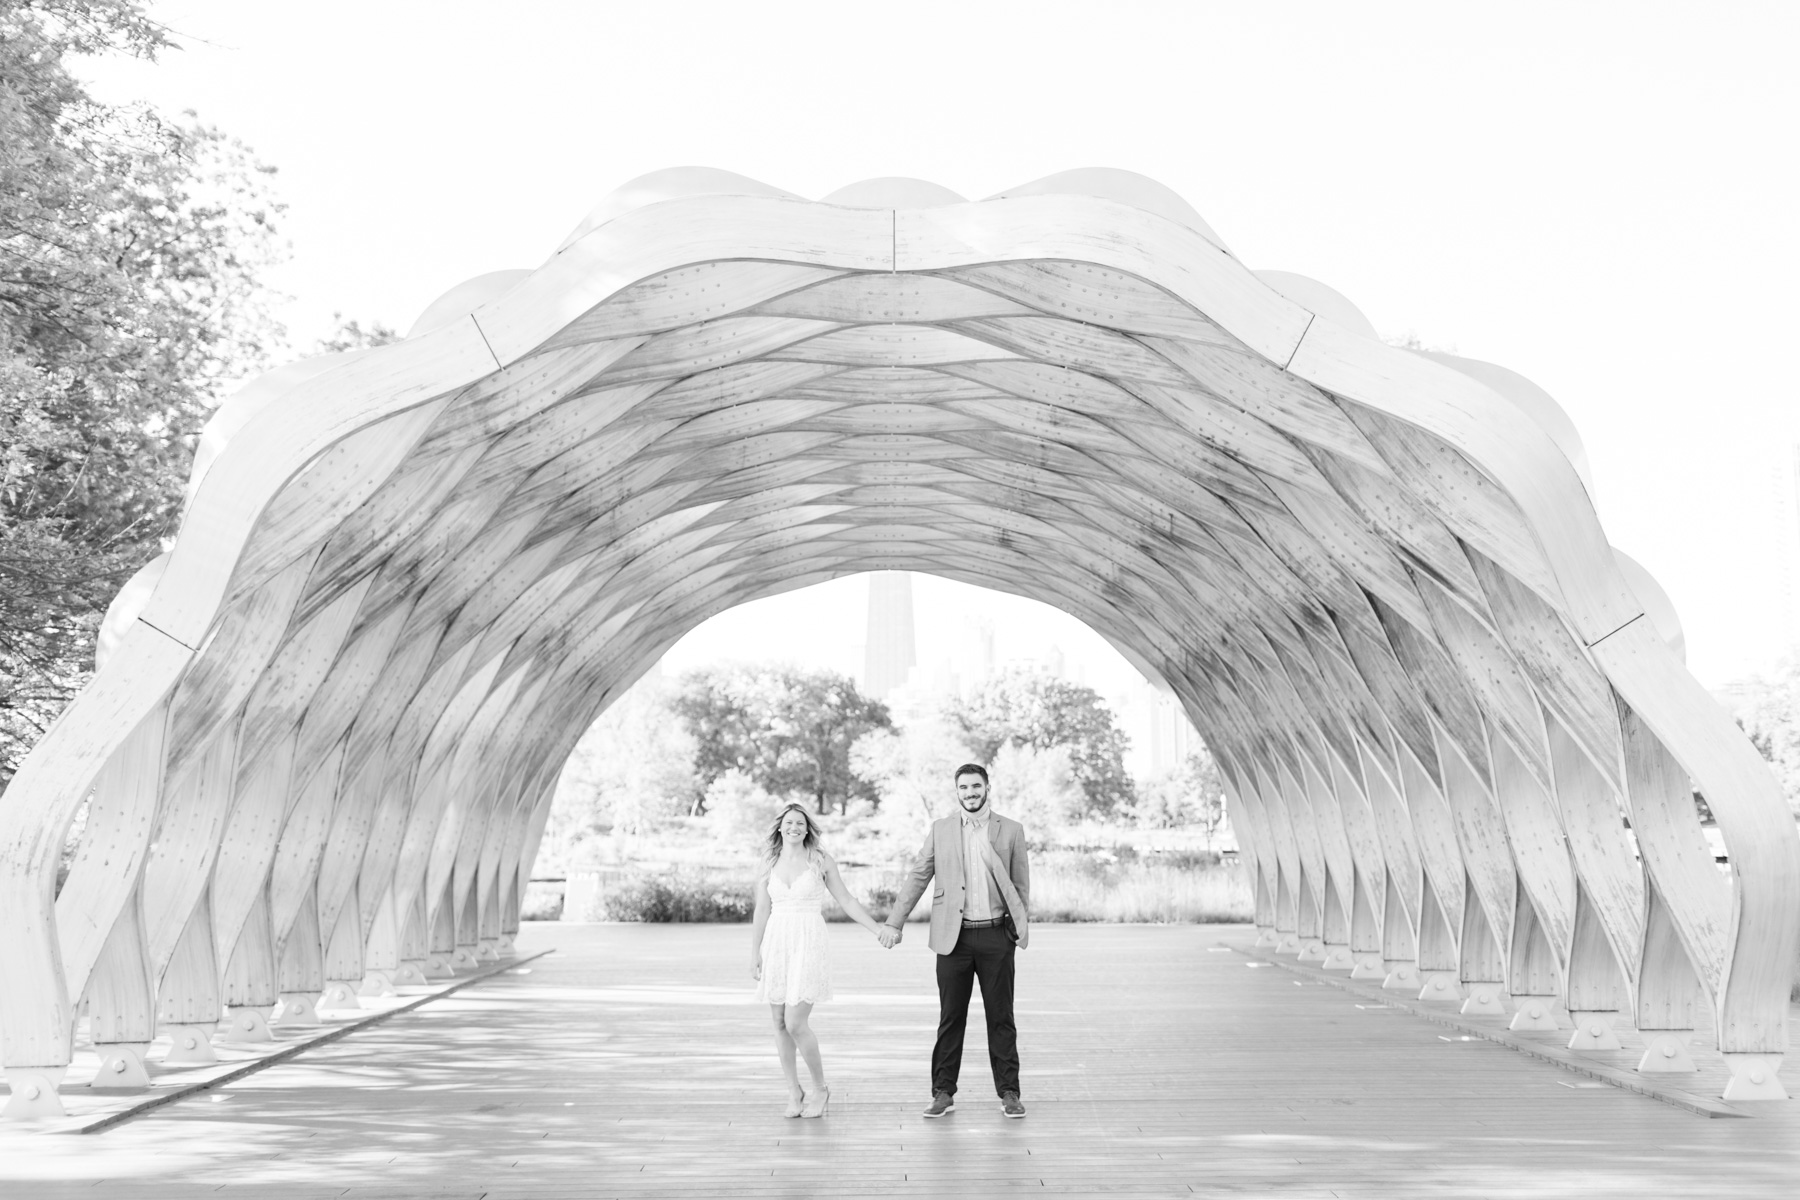 Lincoln Park Zoo Pavilion Engagement Session